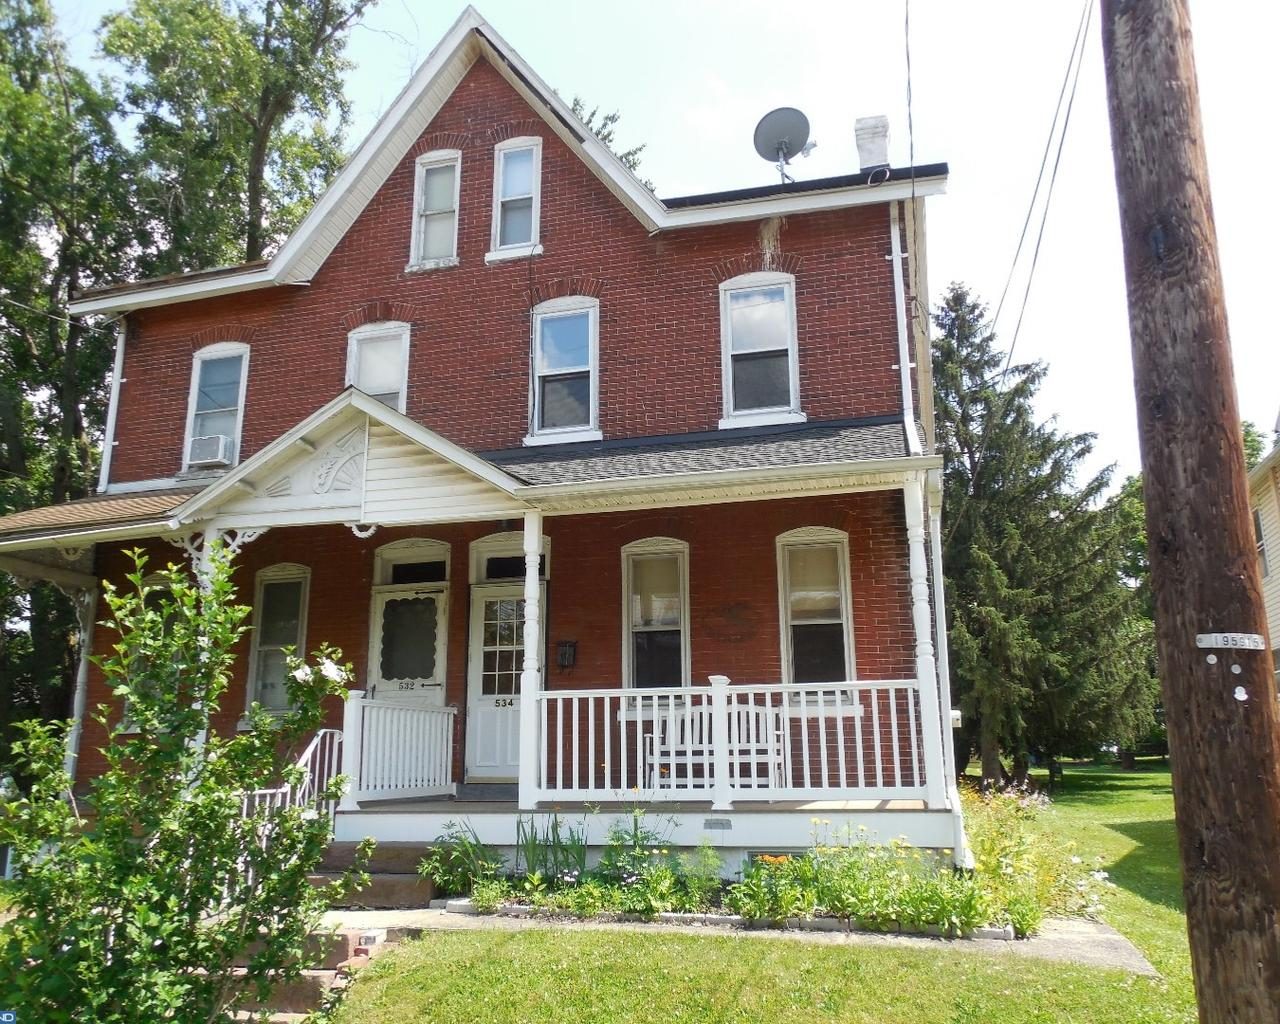 Property for sale at 534 NEW ST, Spring City,  PA 19475